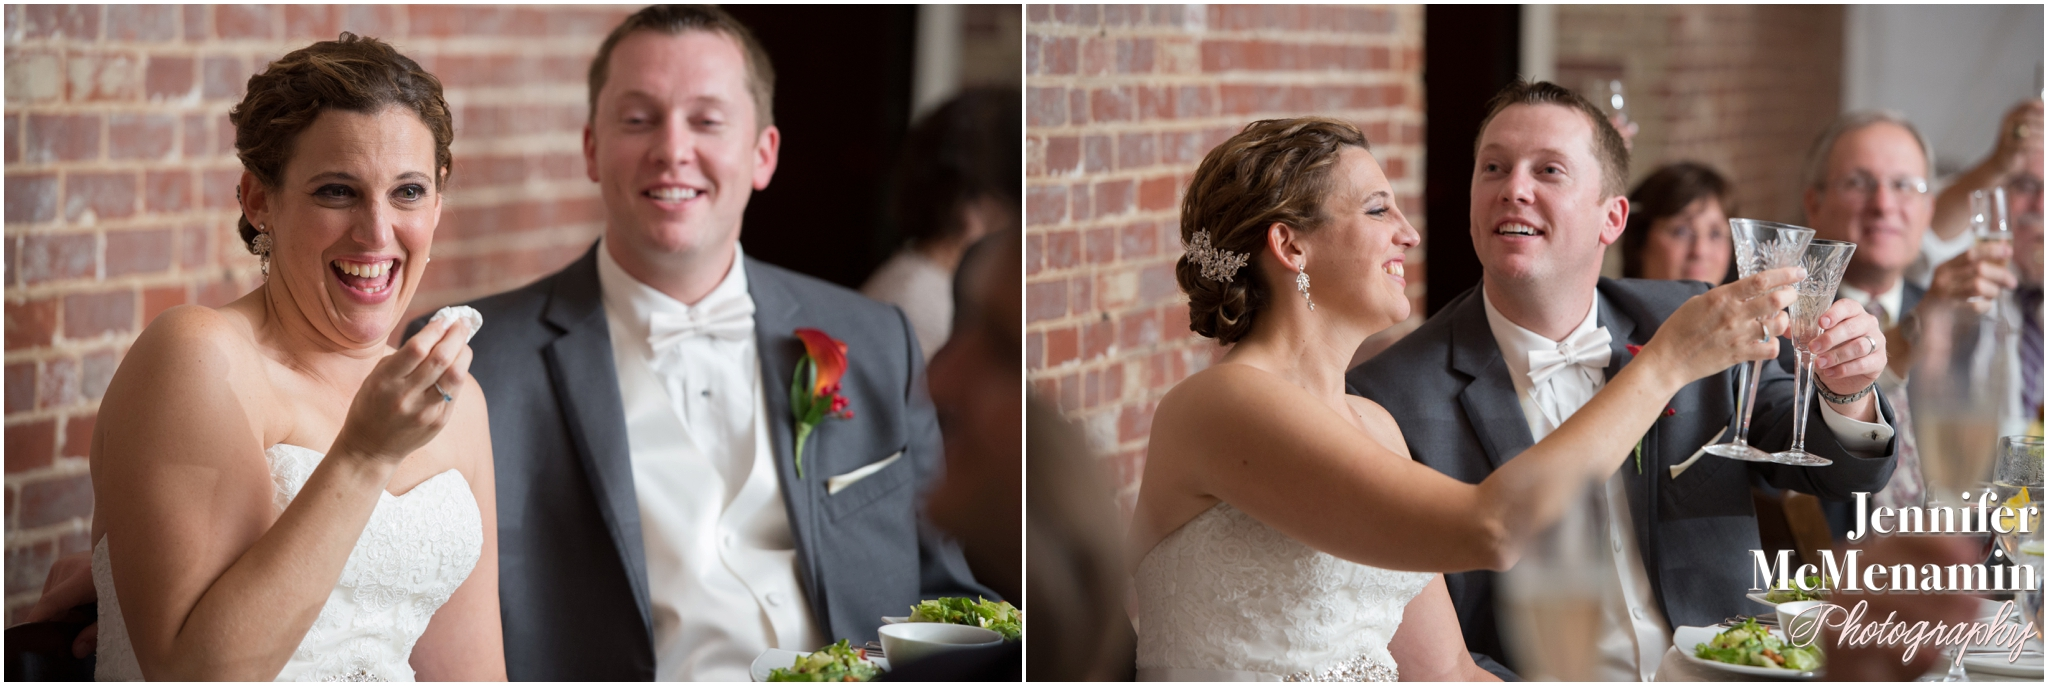 078-HenningMiller_02761-0593_JenniferMcMenaminPhotography_Evergreen-Museum-And-Carriage-House_Evergreen-wedding_Baltimore-wedding-photographer_Baltimore-wedding-photography